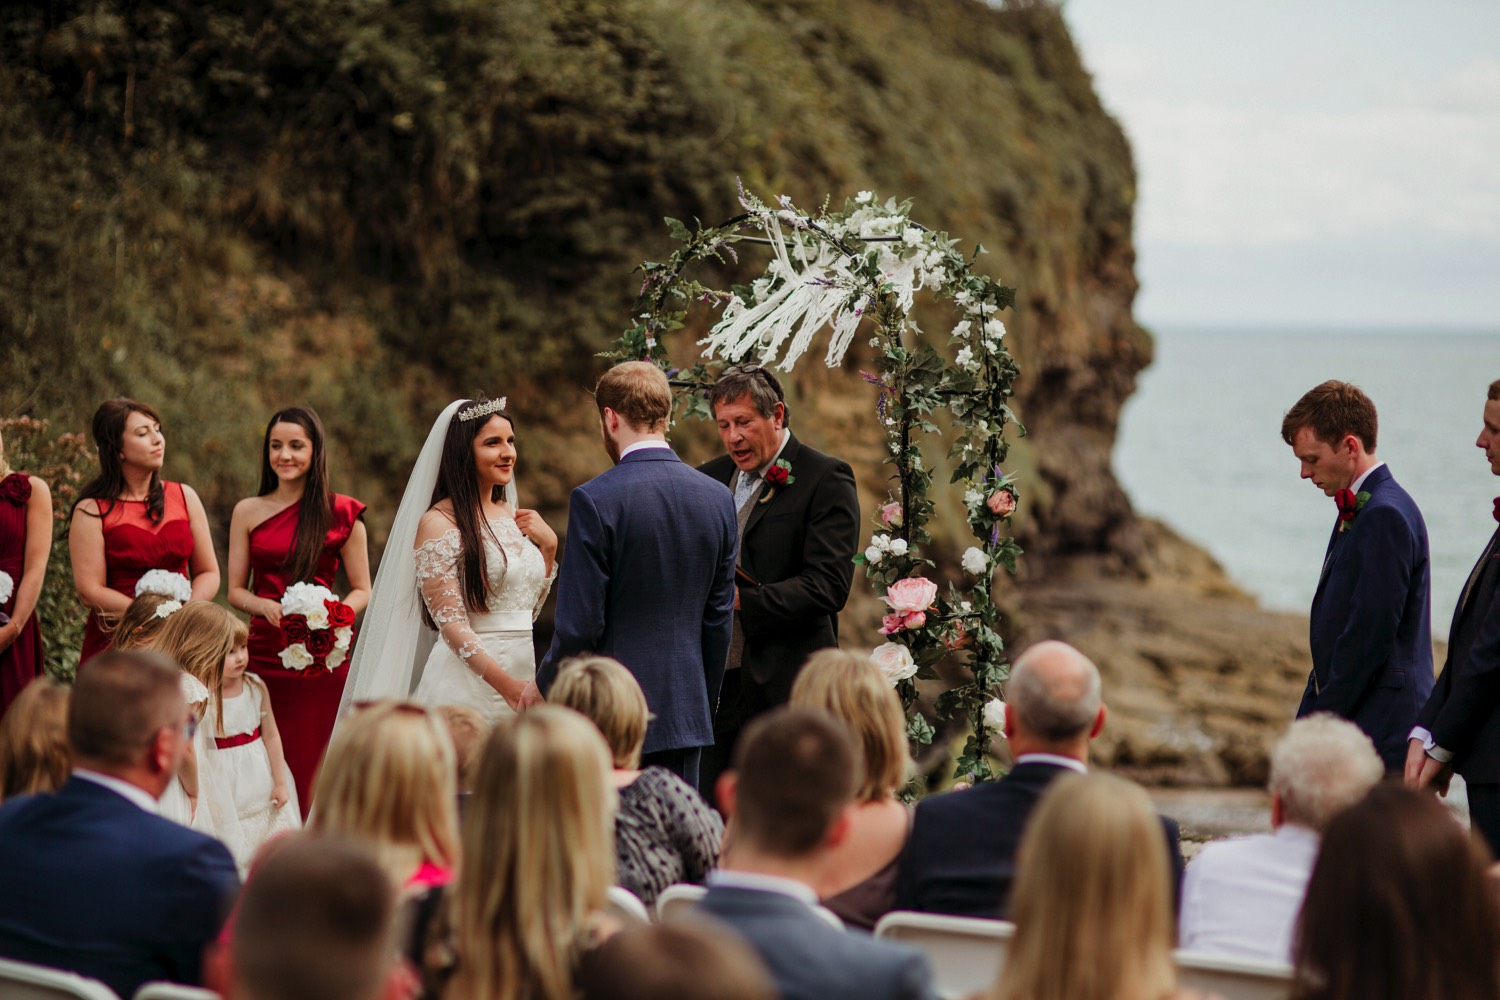 Waterwynch House wedding Tenby KA25.jpg